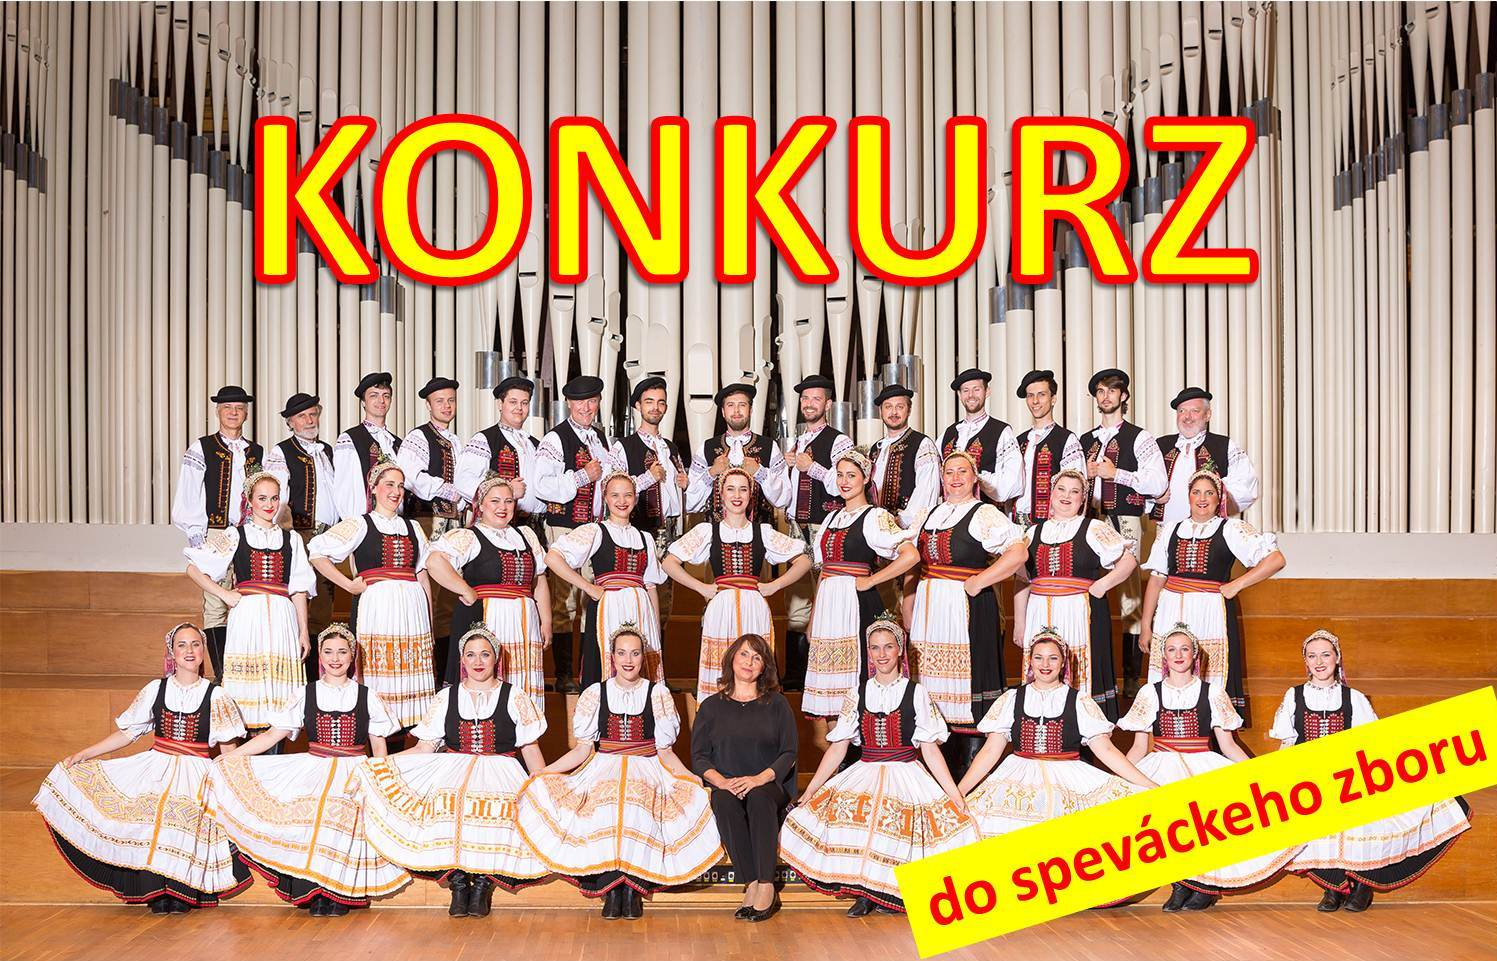 konkurz 2017 - photo (c) Vladimir Yurkovic